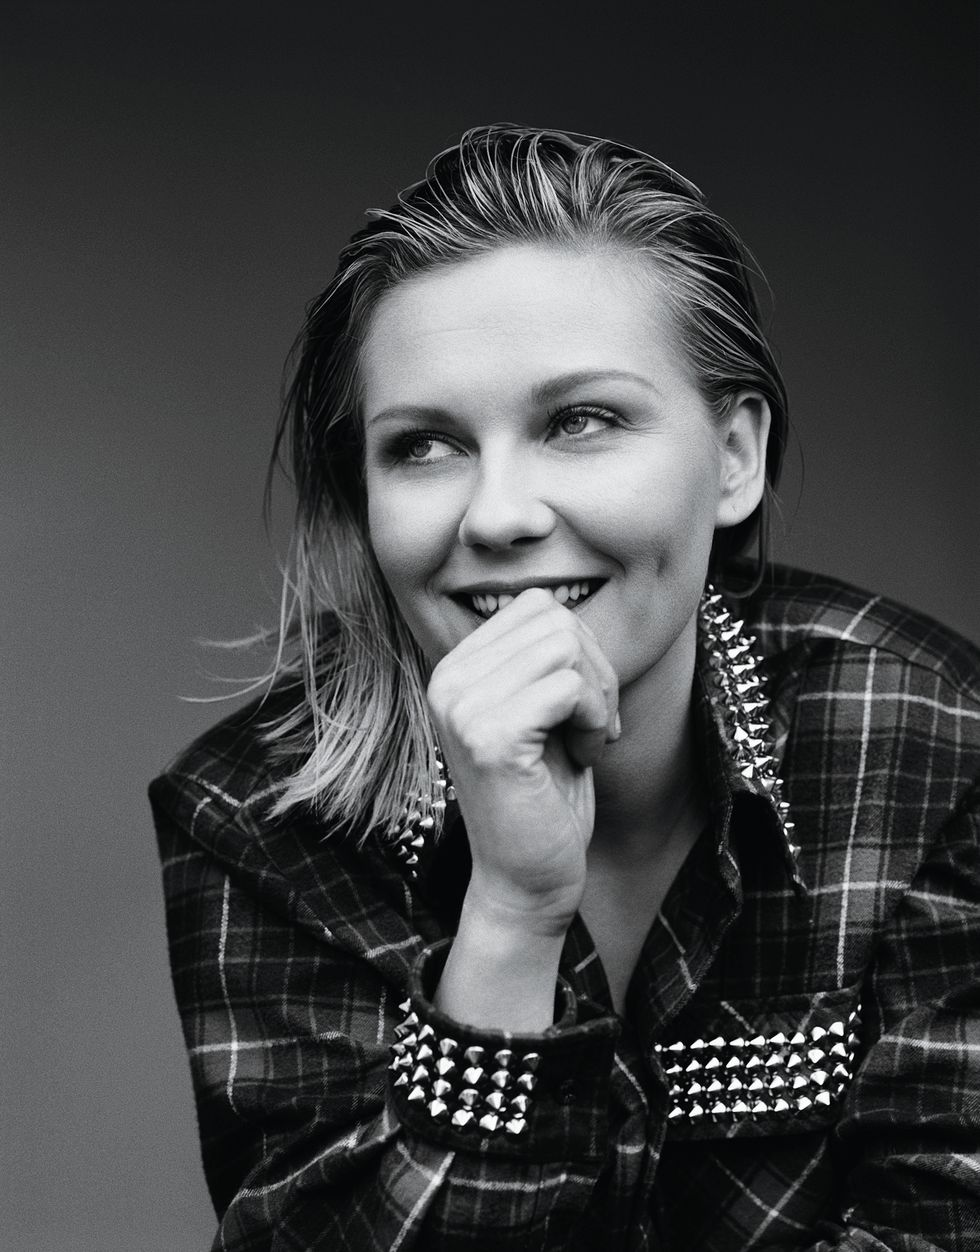 Kirsten Dunst wearing a plaid blazer with ornamental metal spikes.